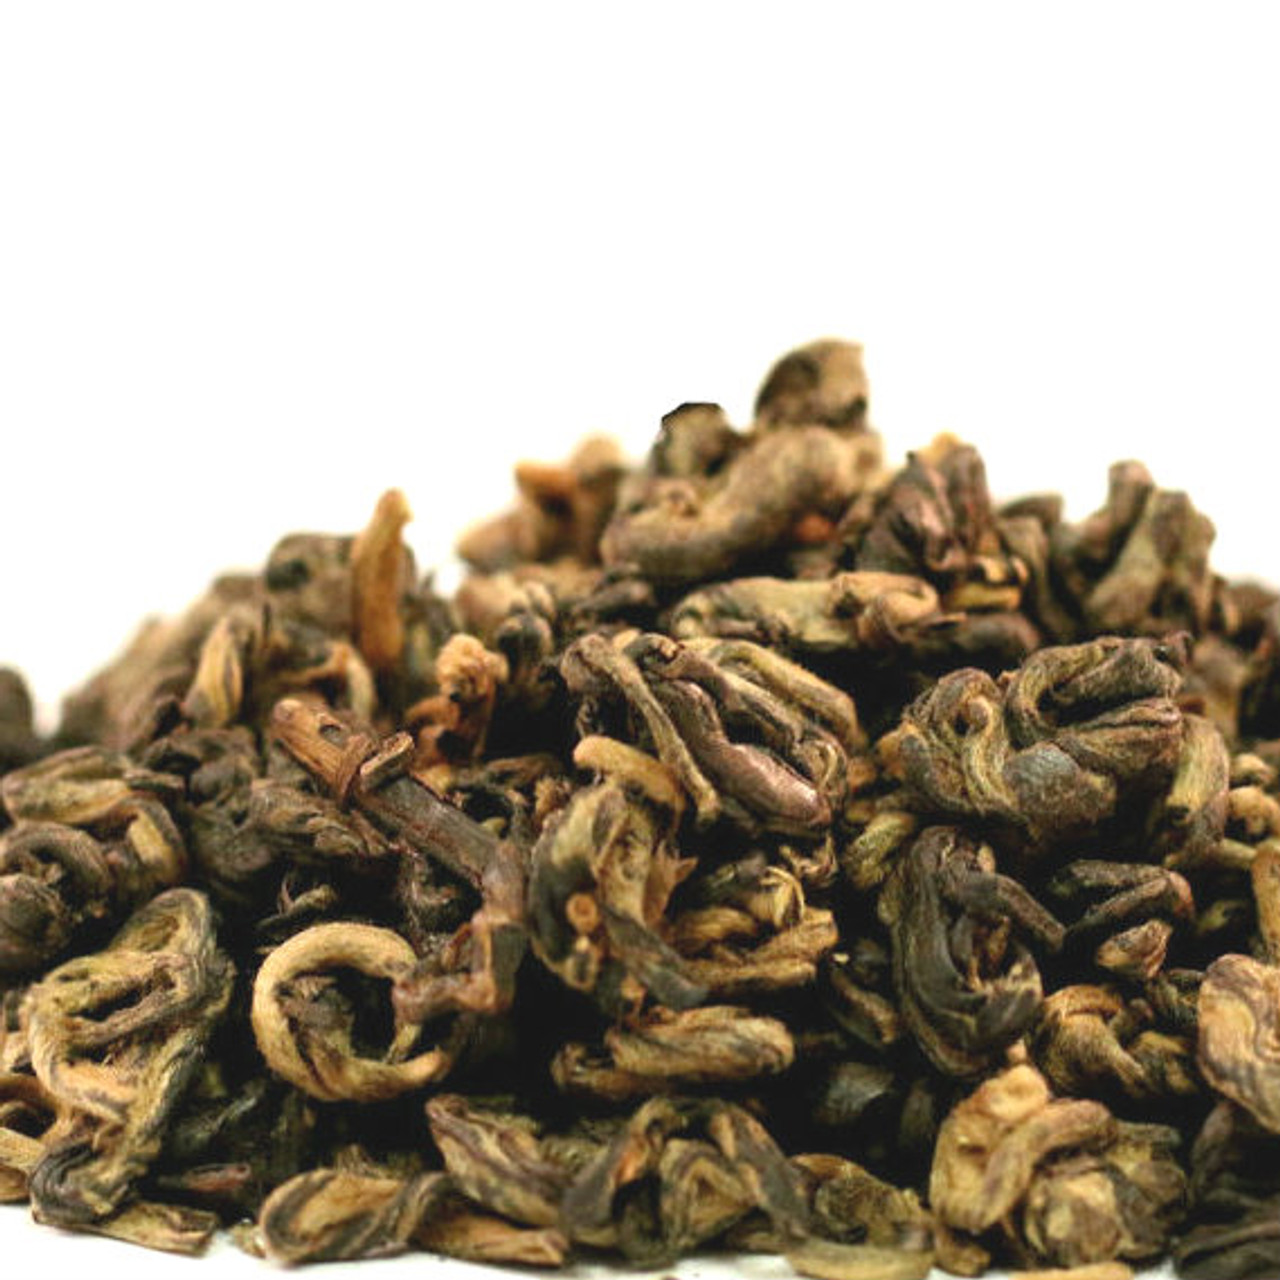 An excellent handrolled black tea from the province of Guangxi in the South of China. The rolled leaf resembles a snail and displays an a bundance of goldentips. Taste wise very unique with hints of cocoa and malt. Overall very mellow.